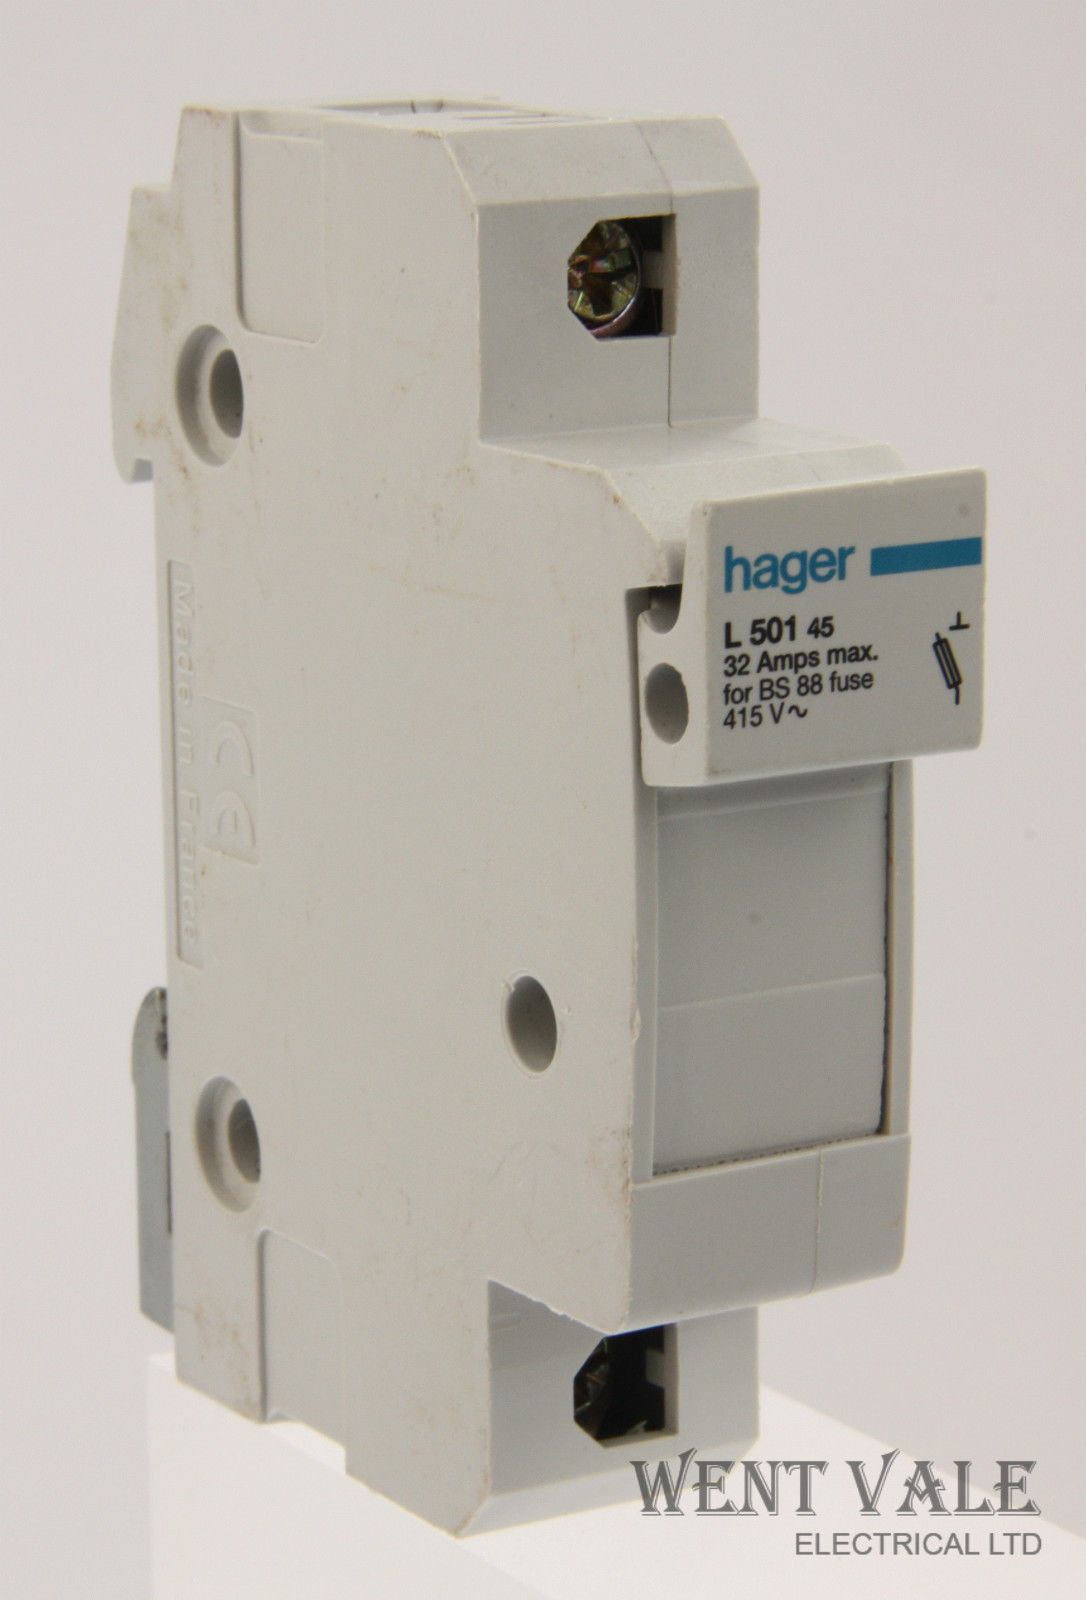 Hager Electrical Fuse Box : Hager l amp max bs cartridge fuse holder used